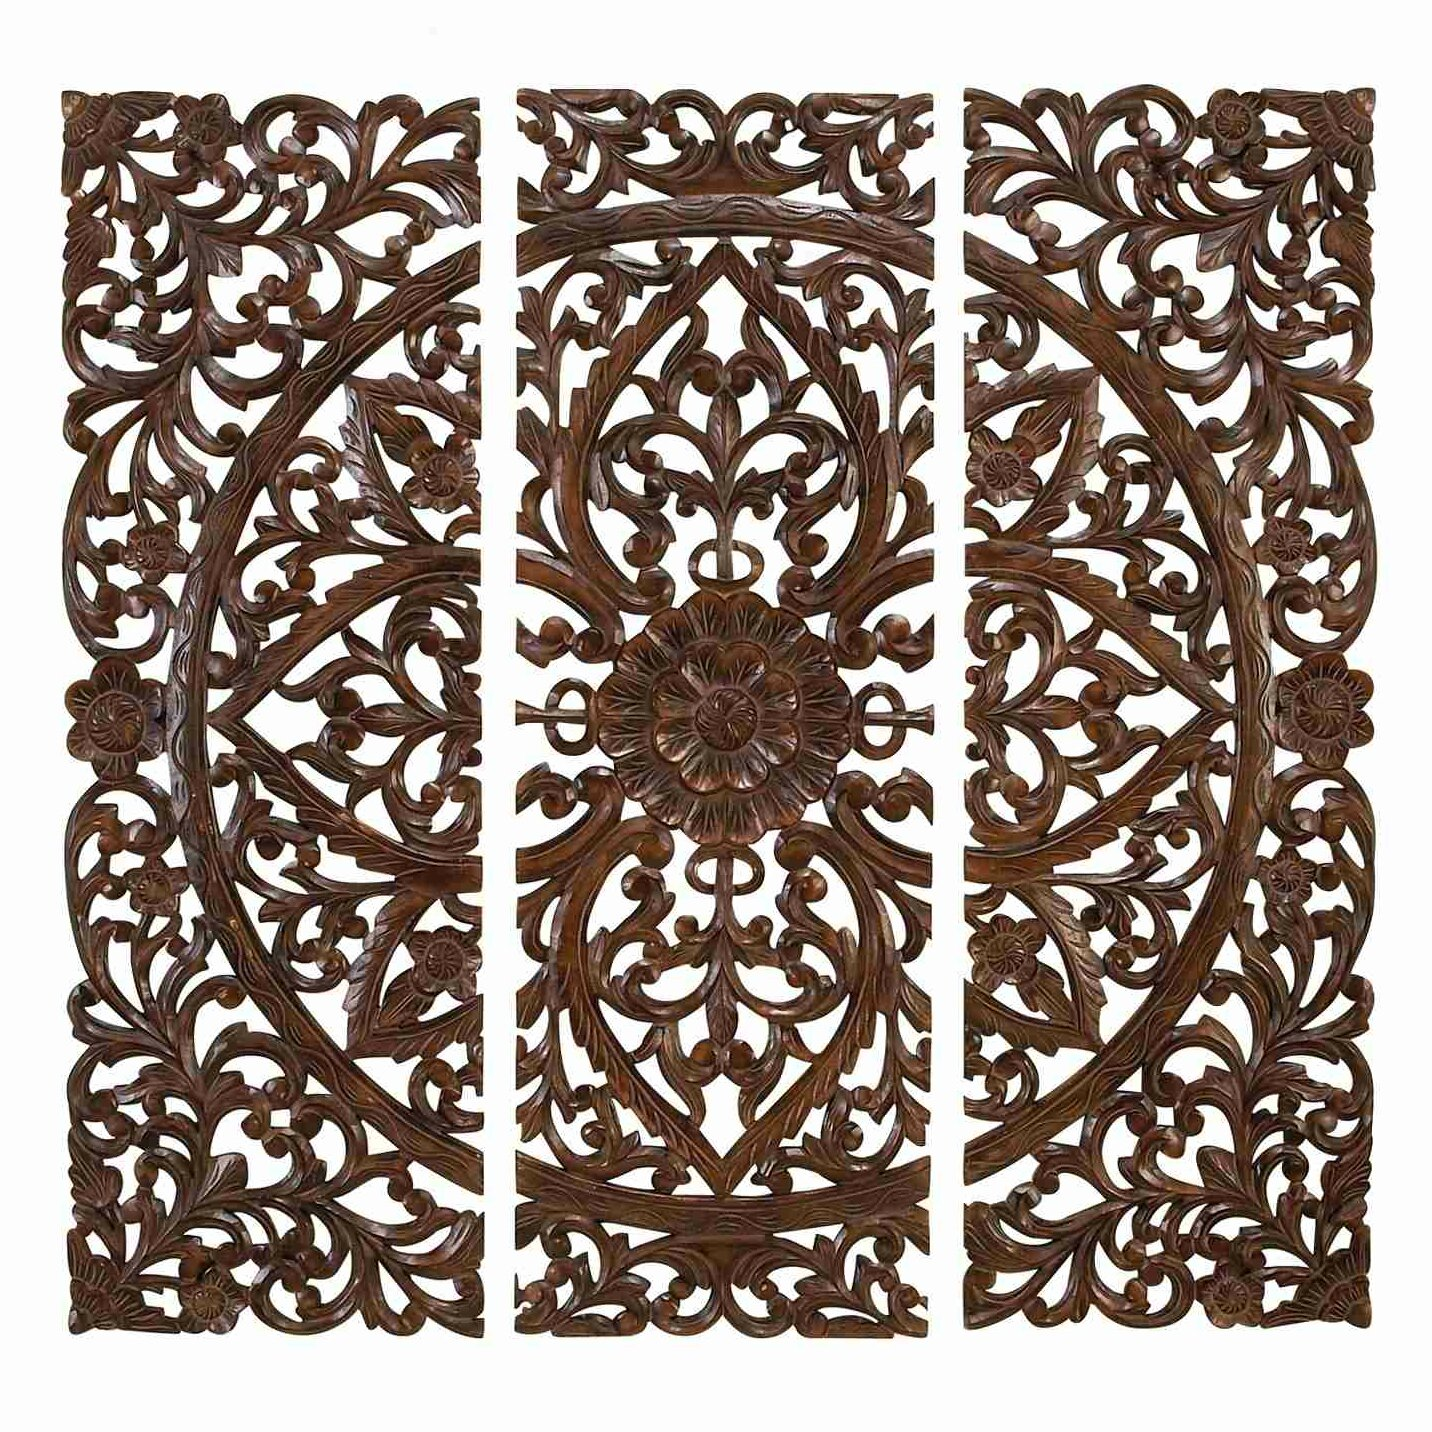 Carved wood headboard wall decor